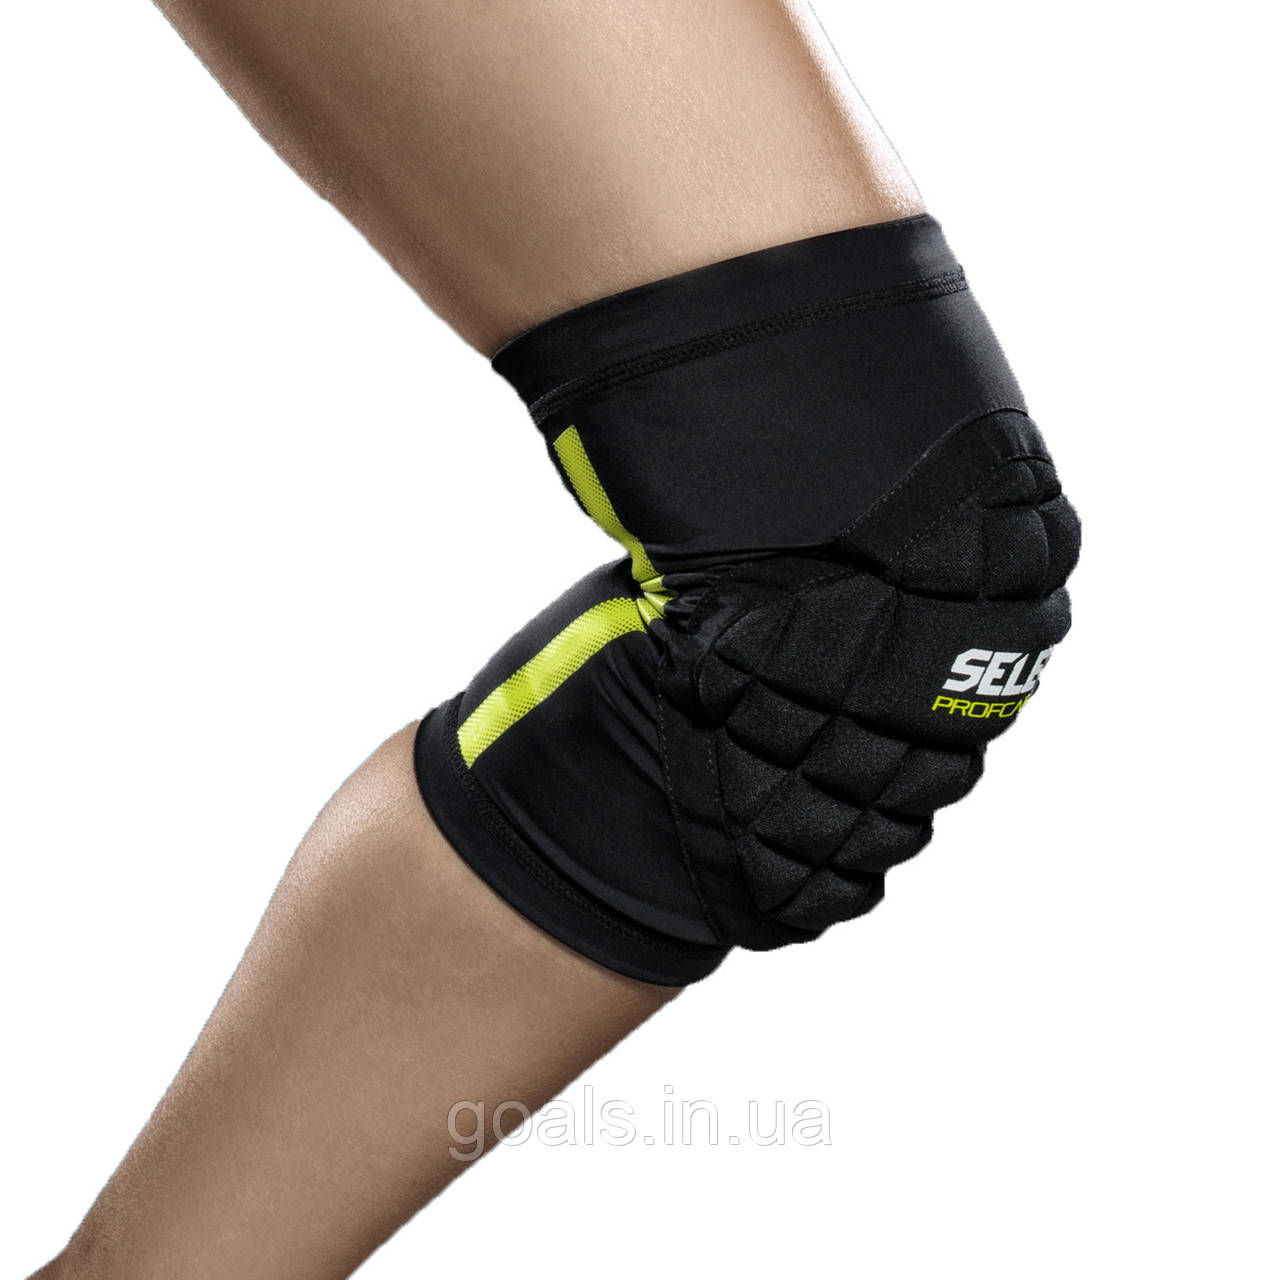 Наколенник детский SELECT Knee support - Handball Youth 6291 (2-pack) p.M